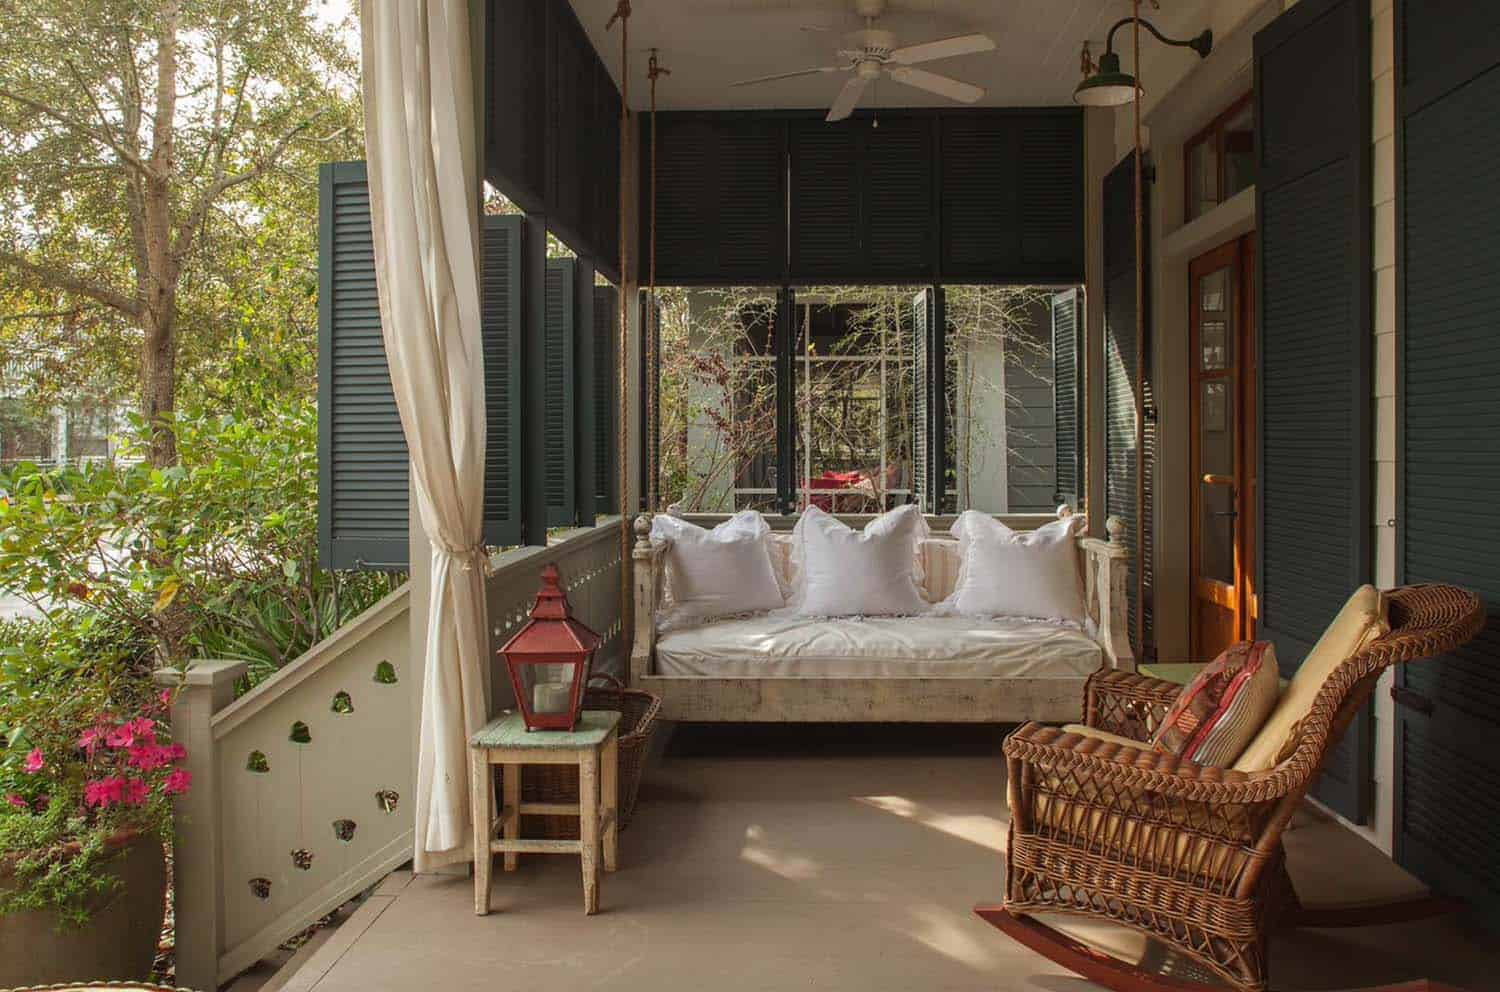 The Swing Bed Was Custom Designed For This Beach Cottage In Miami Florida However Original Charleston Bedswing Makes Ones That Are Similar Purchase